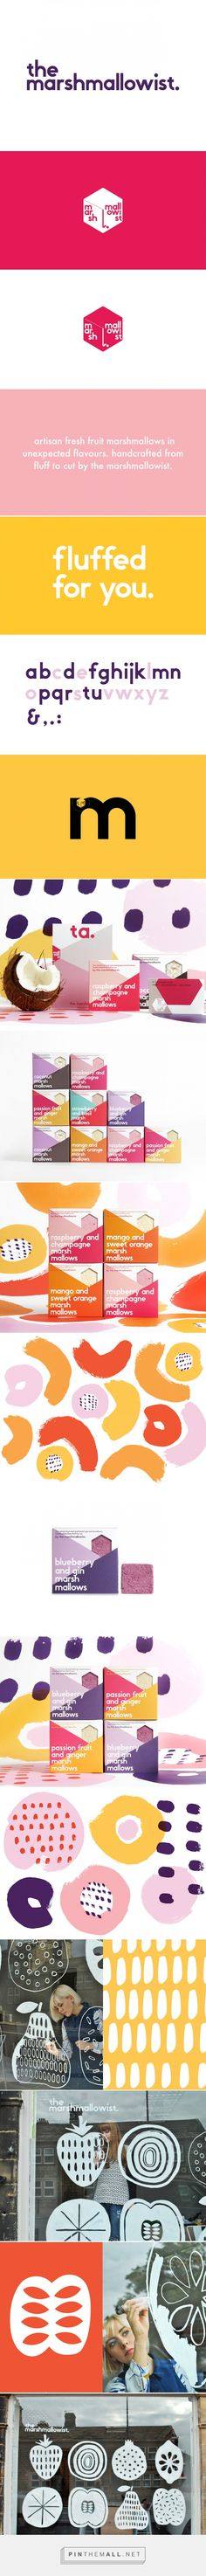 The Marshmallowist marshmallow packaging designed by Veronica Lethorn & Eve Warren - http://www.packagingoftheworld.com/2015/10/the-marshmallowist.html